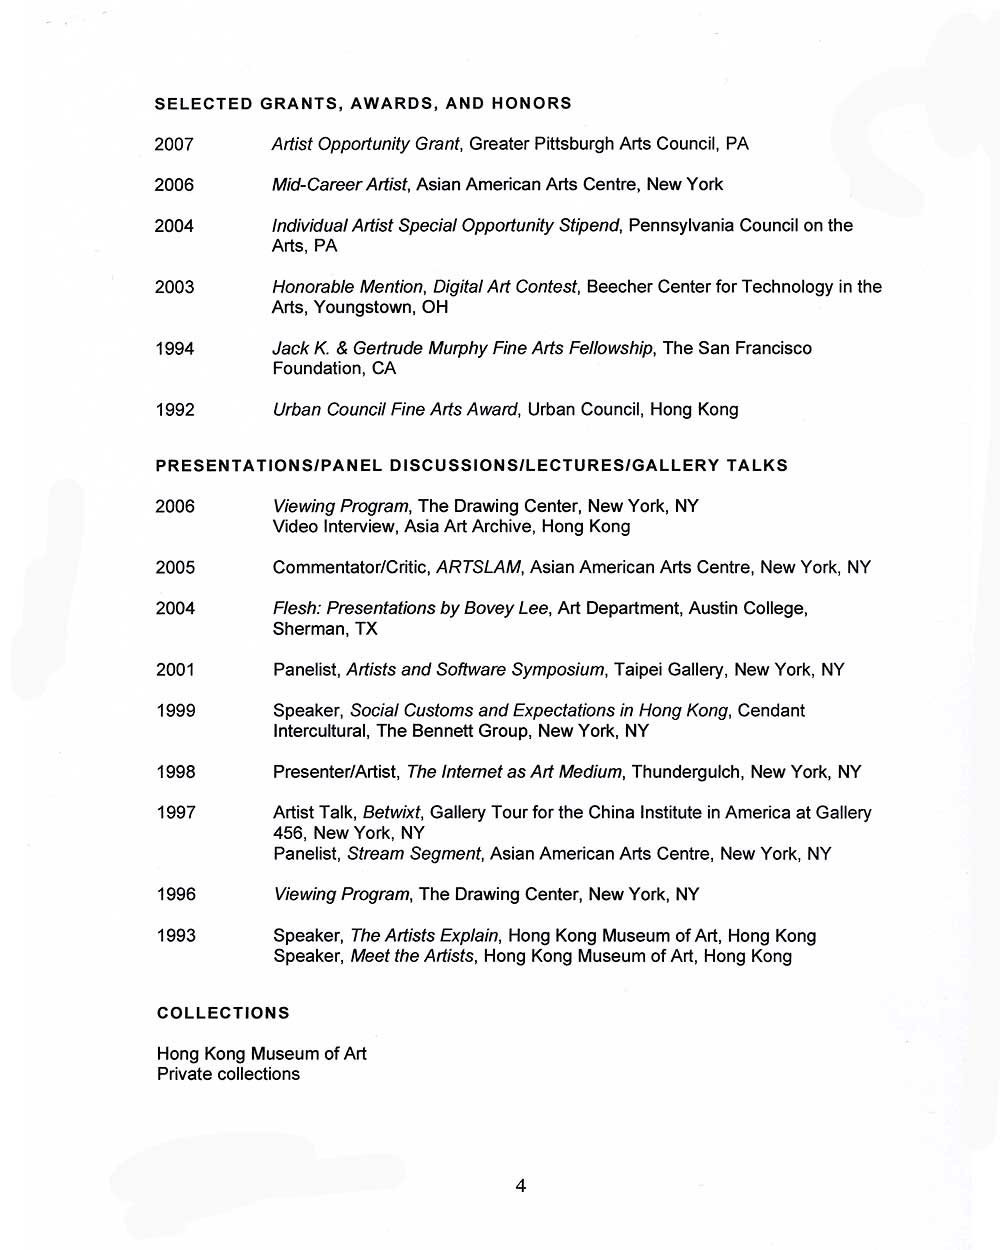 Bovey Lee's Resume, pg 4